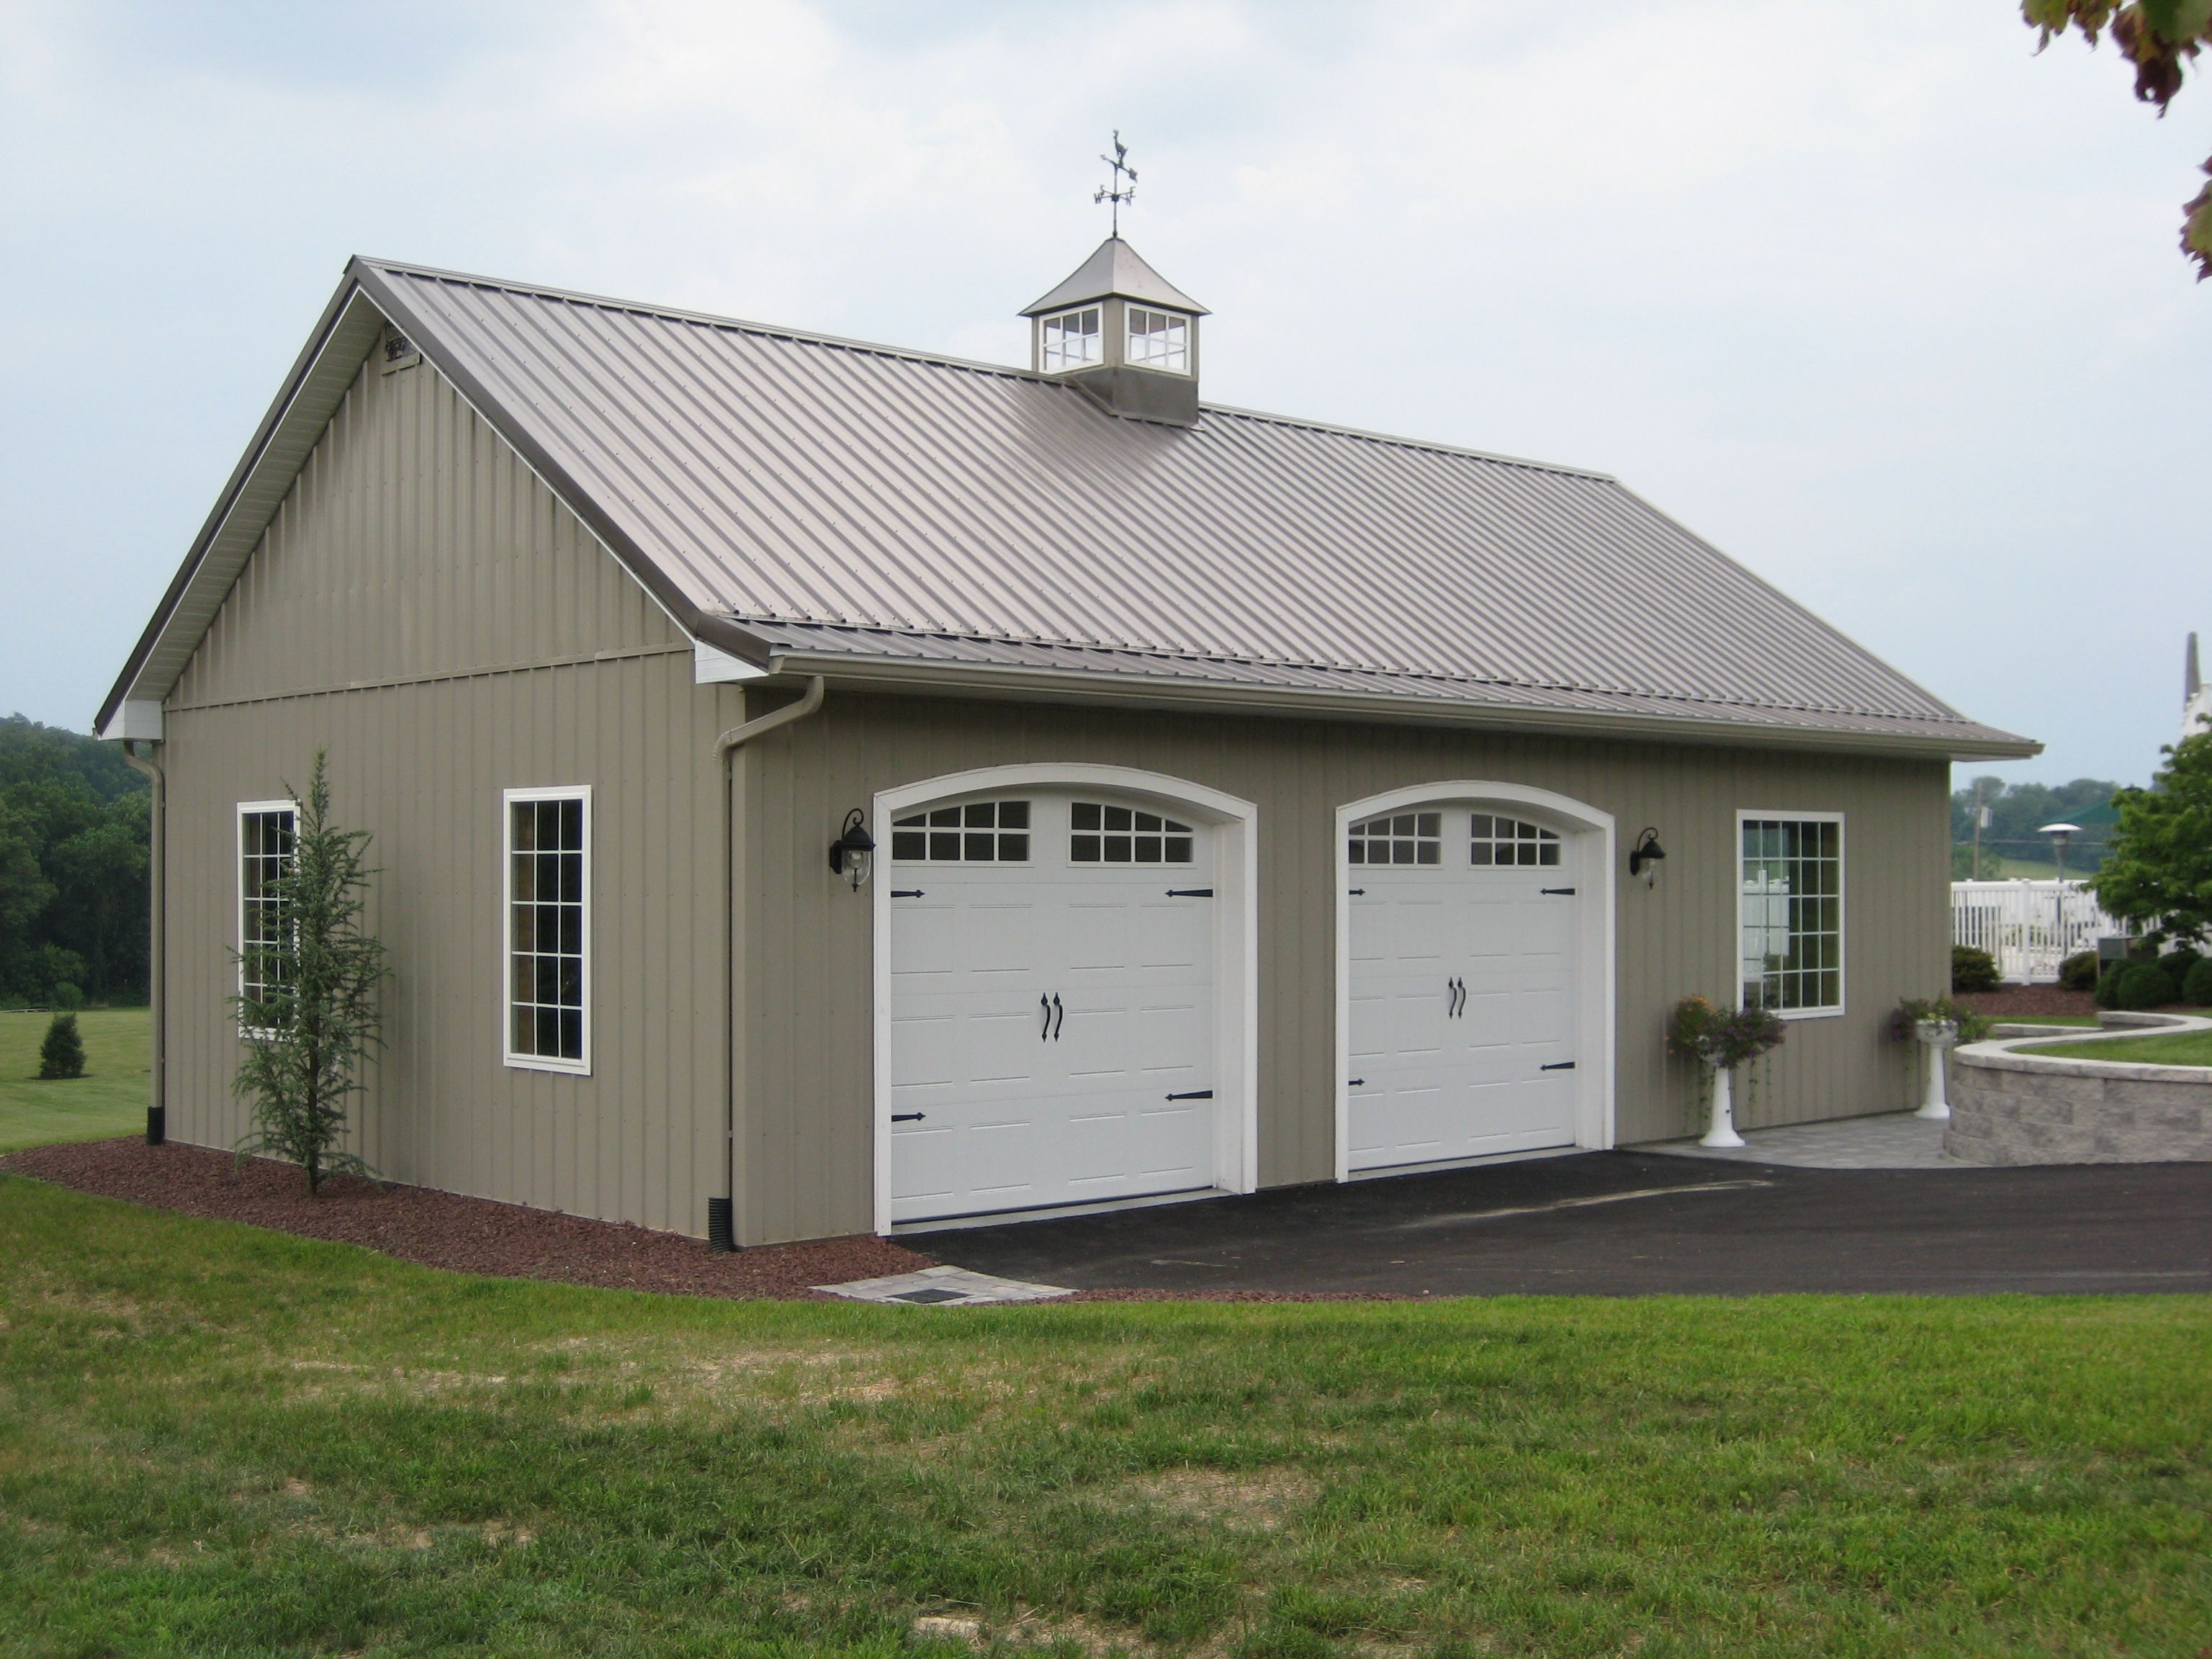 Best 25 pole barn garage ideas on pinterest pole barns for Garage design ideas gallery